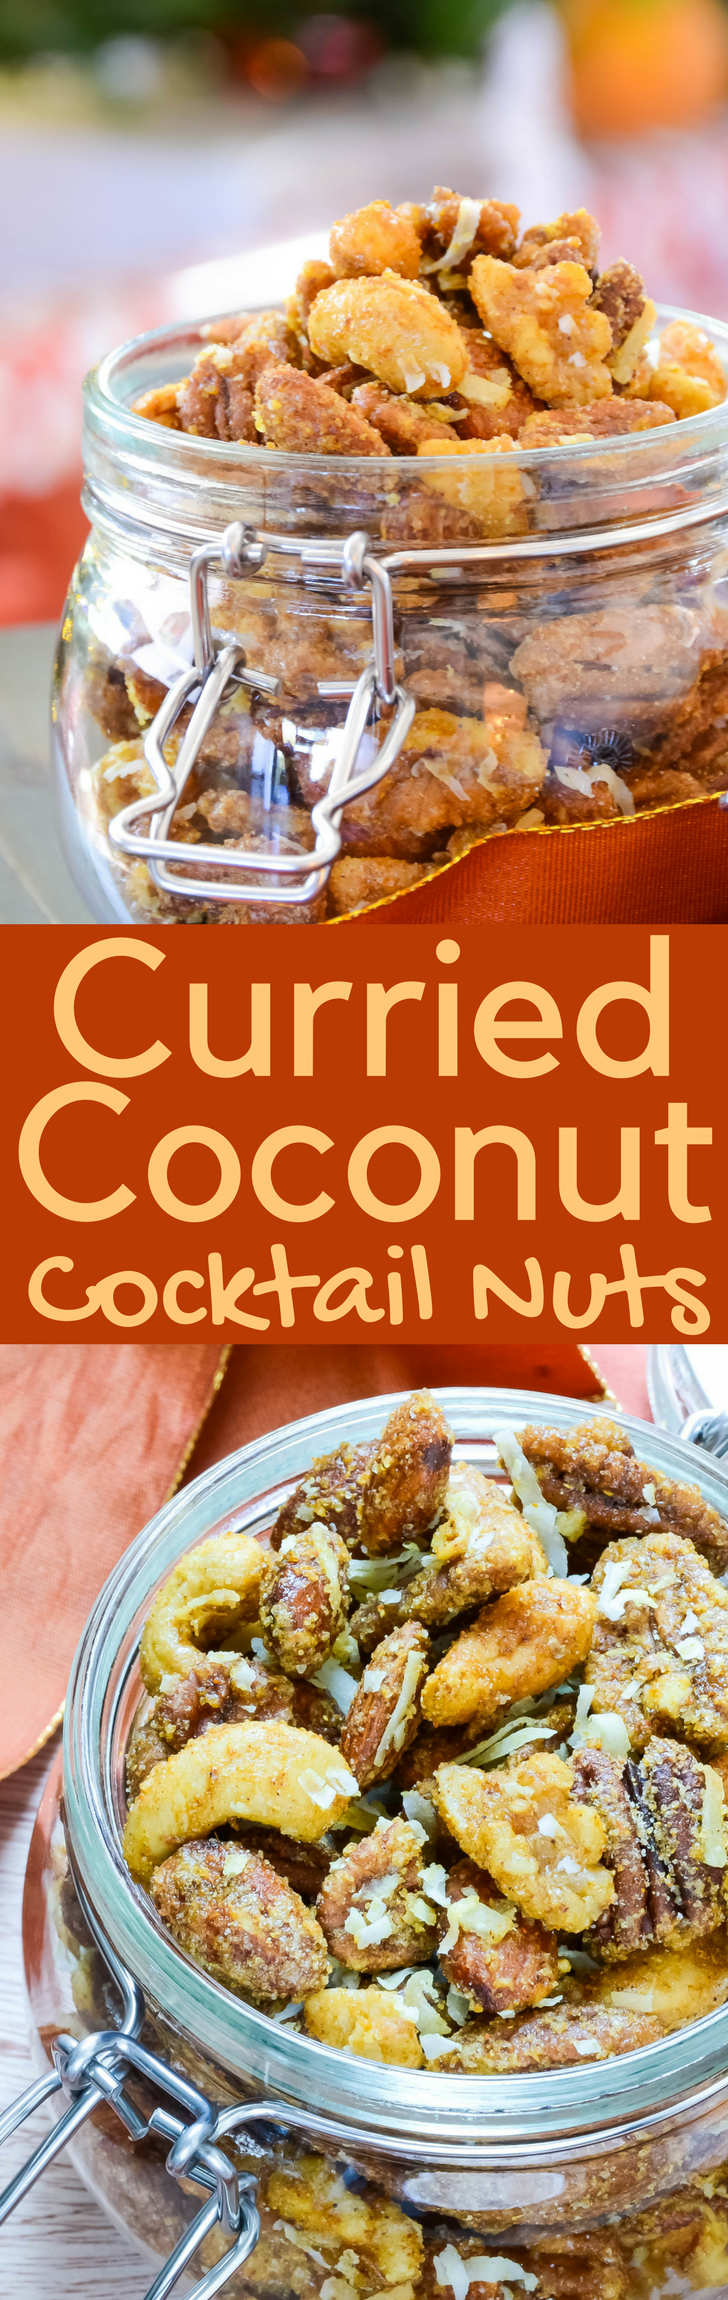 This simple spiced nut recipe also makes a great hostess gift. Curried Coconut Cocktail Nuts are an easy-to-make snack treat for the holidays!